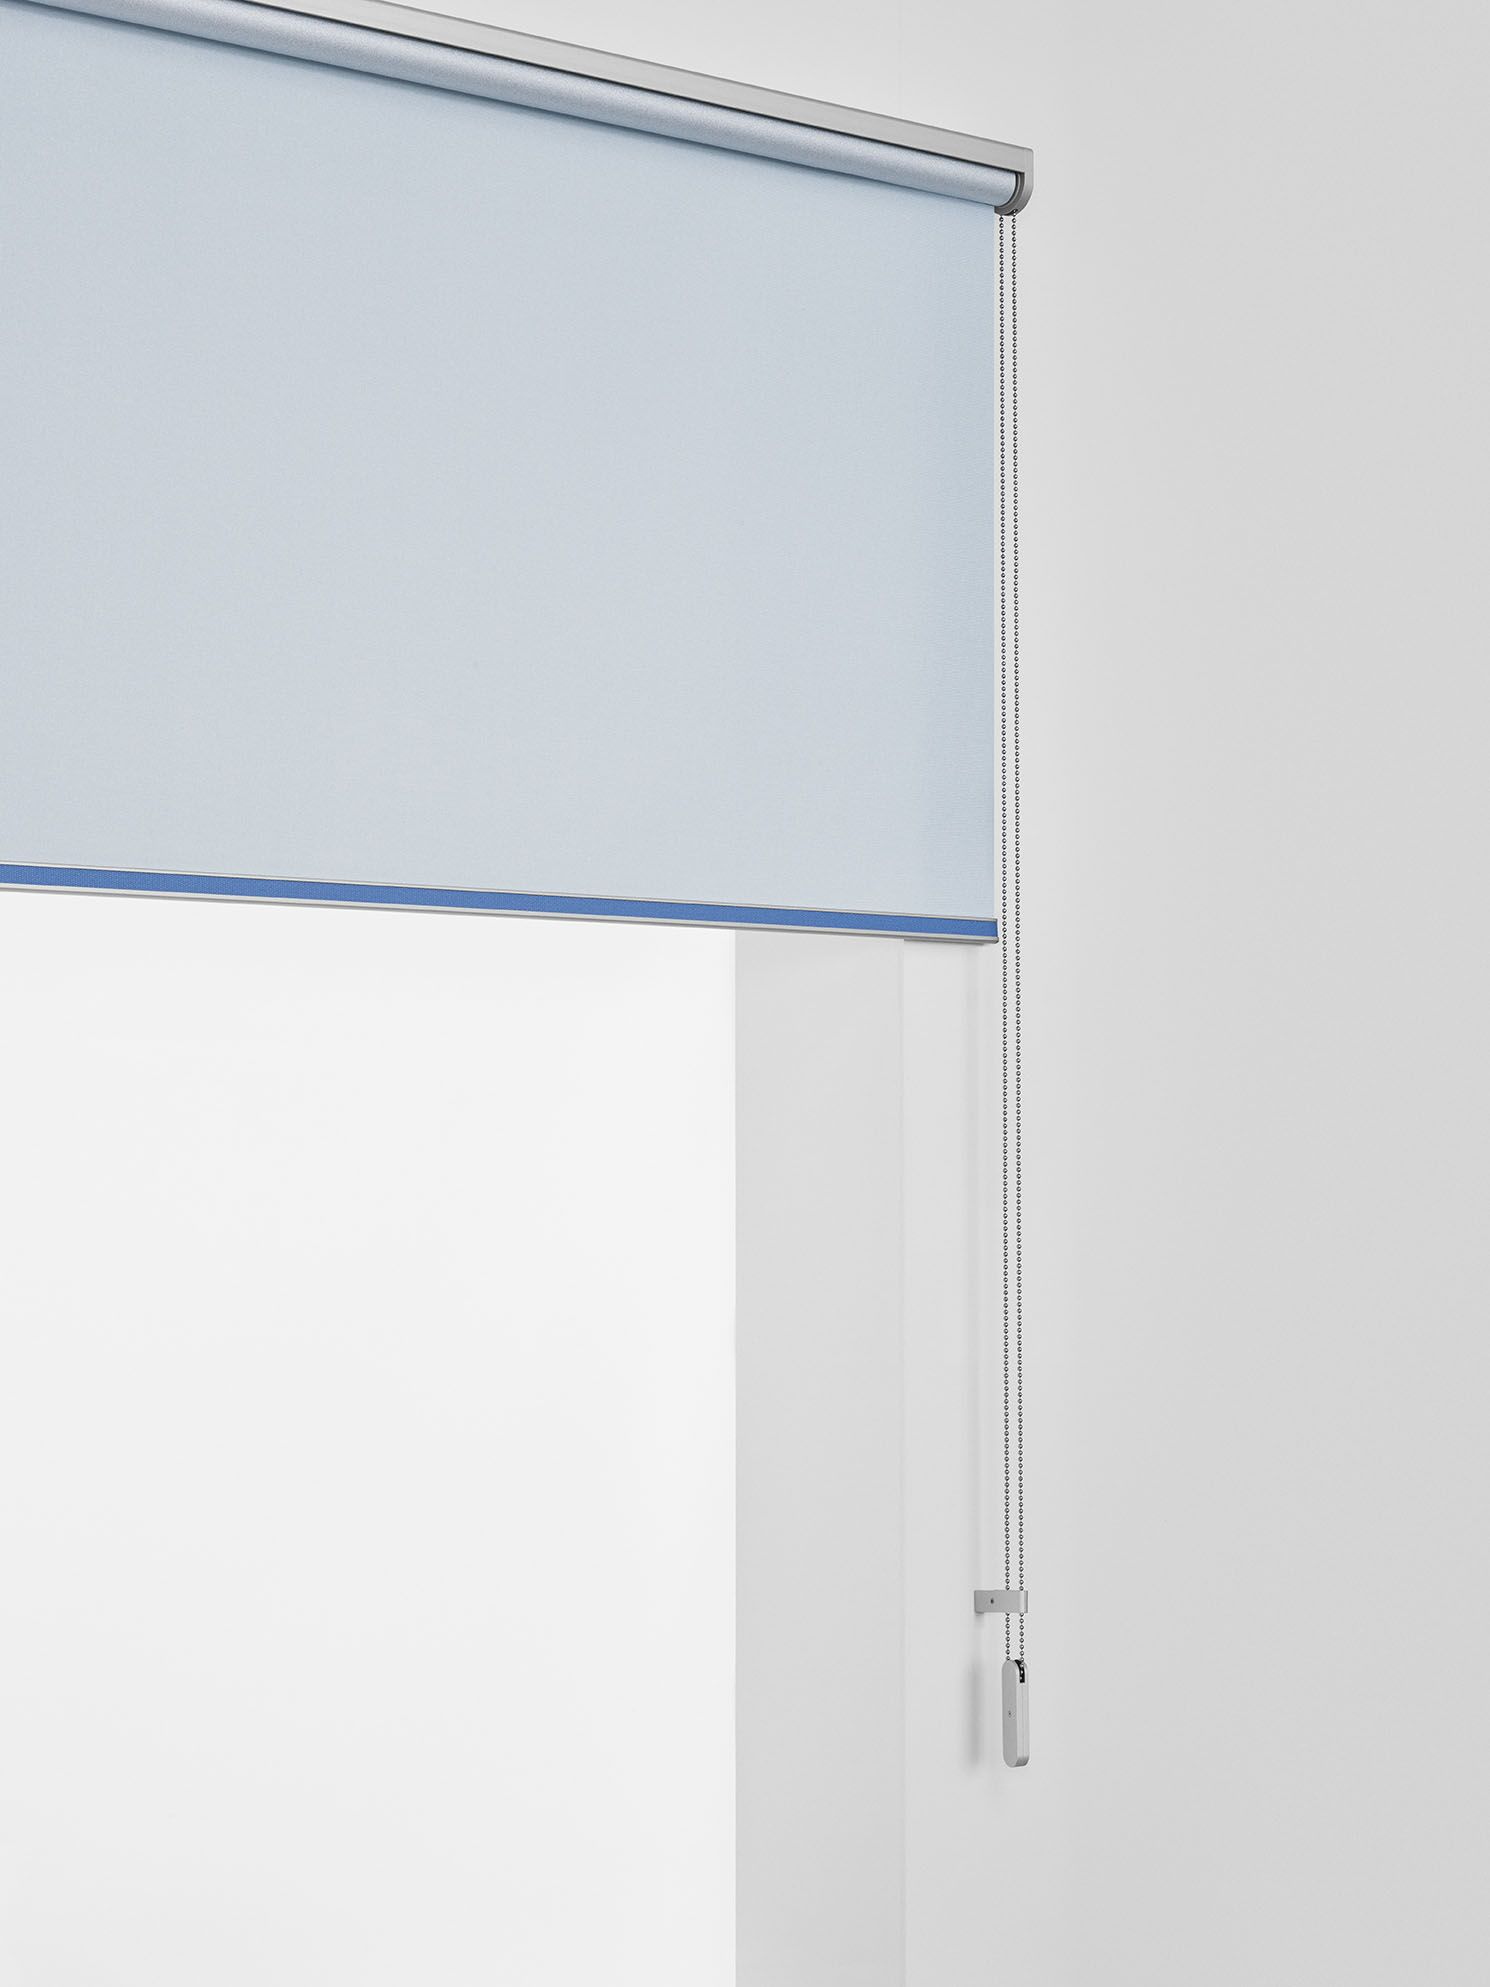 Kvadrat Roller Blind Designed By Ronan And Erwan Bouroullec